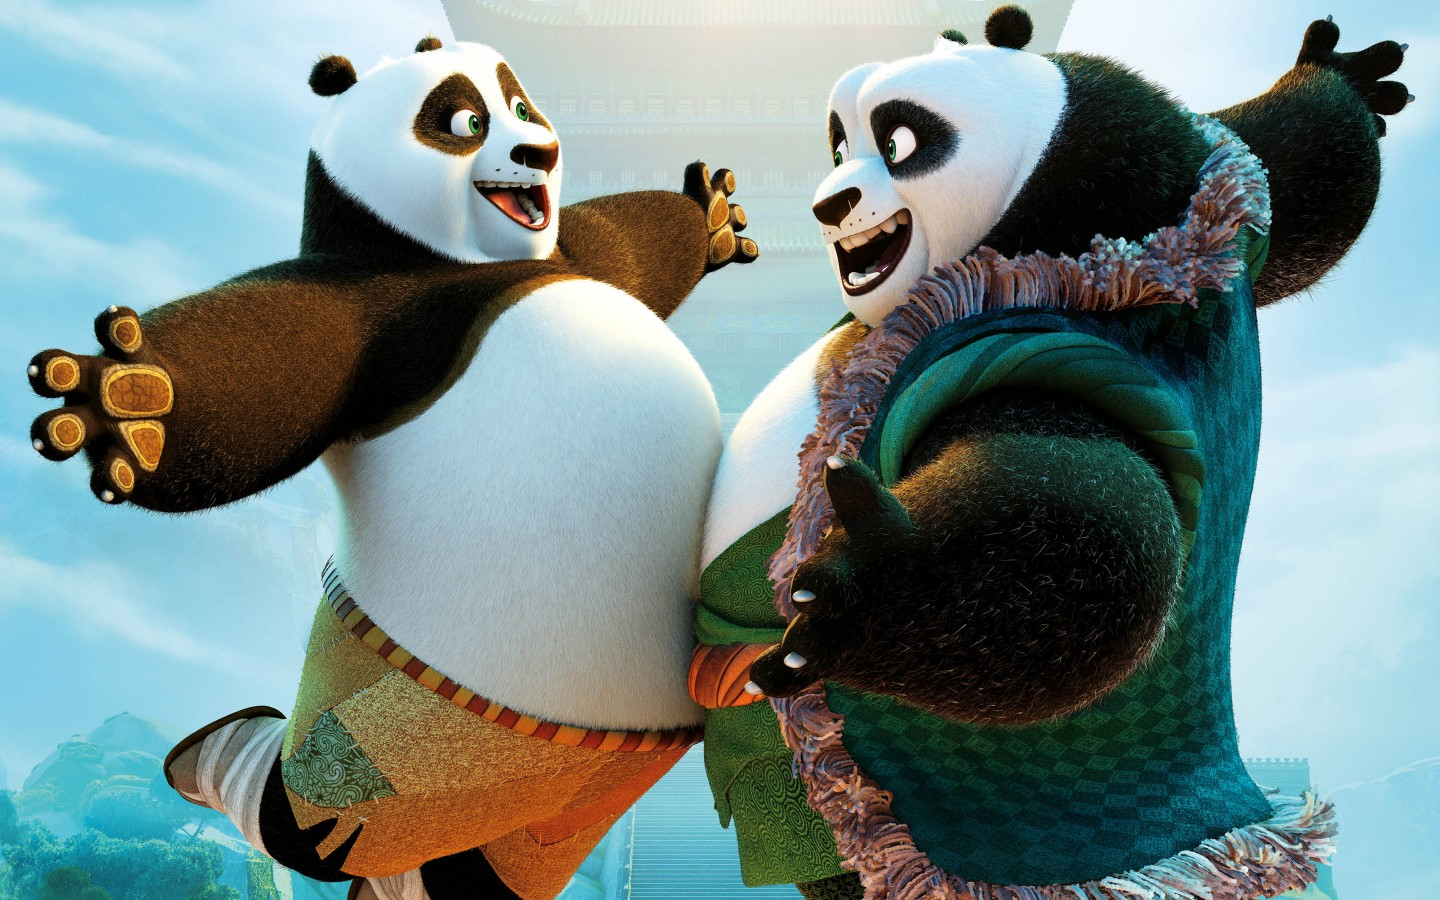 Wallpaper Desktop 3d Animation Kung Fu Panda 3 2016 Animation Wallpapers Hd Wallpapers